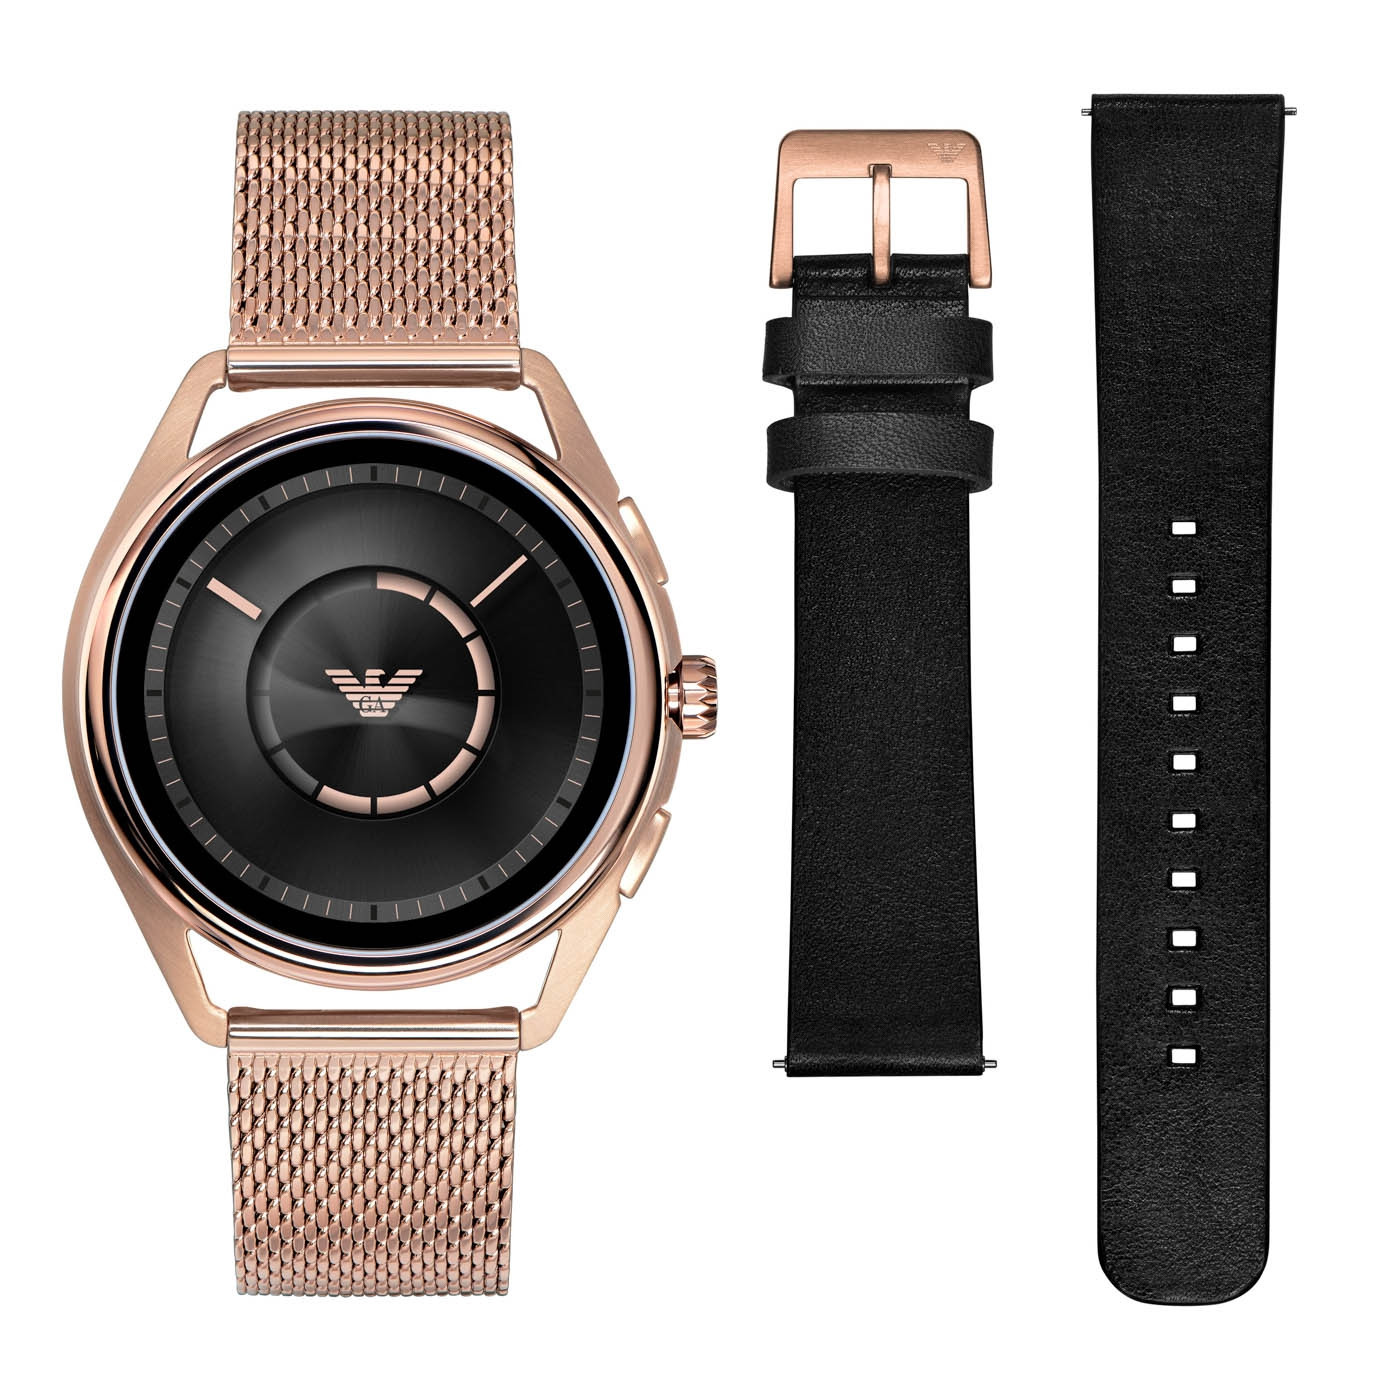 Emporio Armani Connected Matteo Gen 4 Display Smartwatch Giftset ART9005